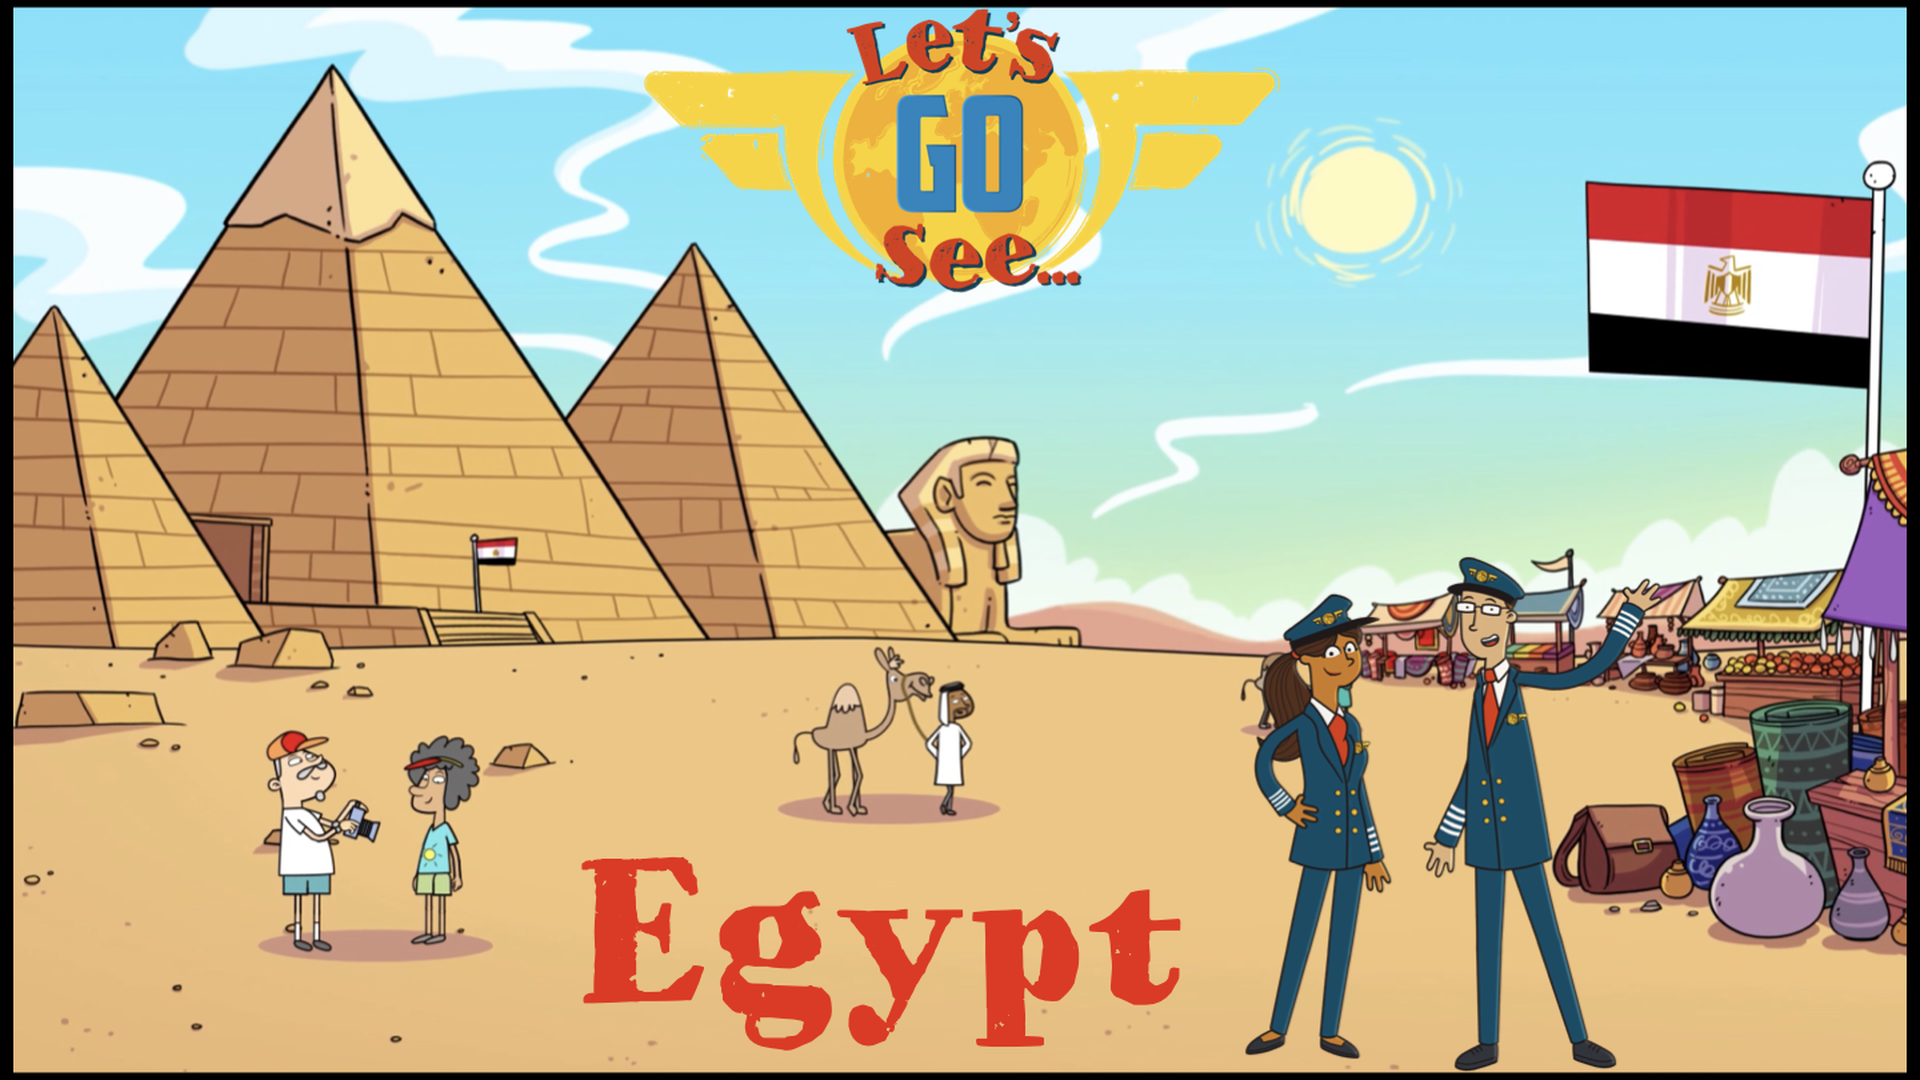 Let's Go See Egypt